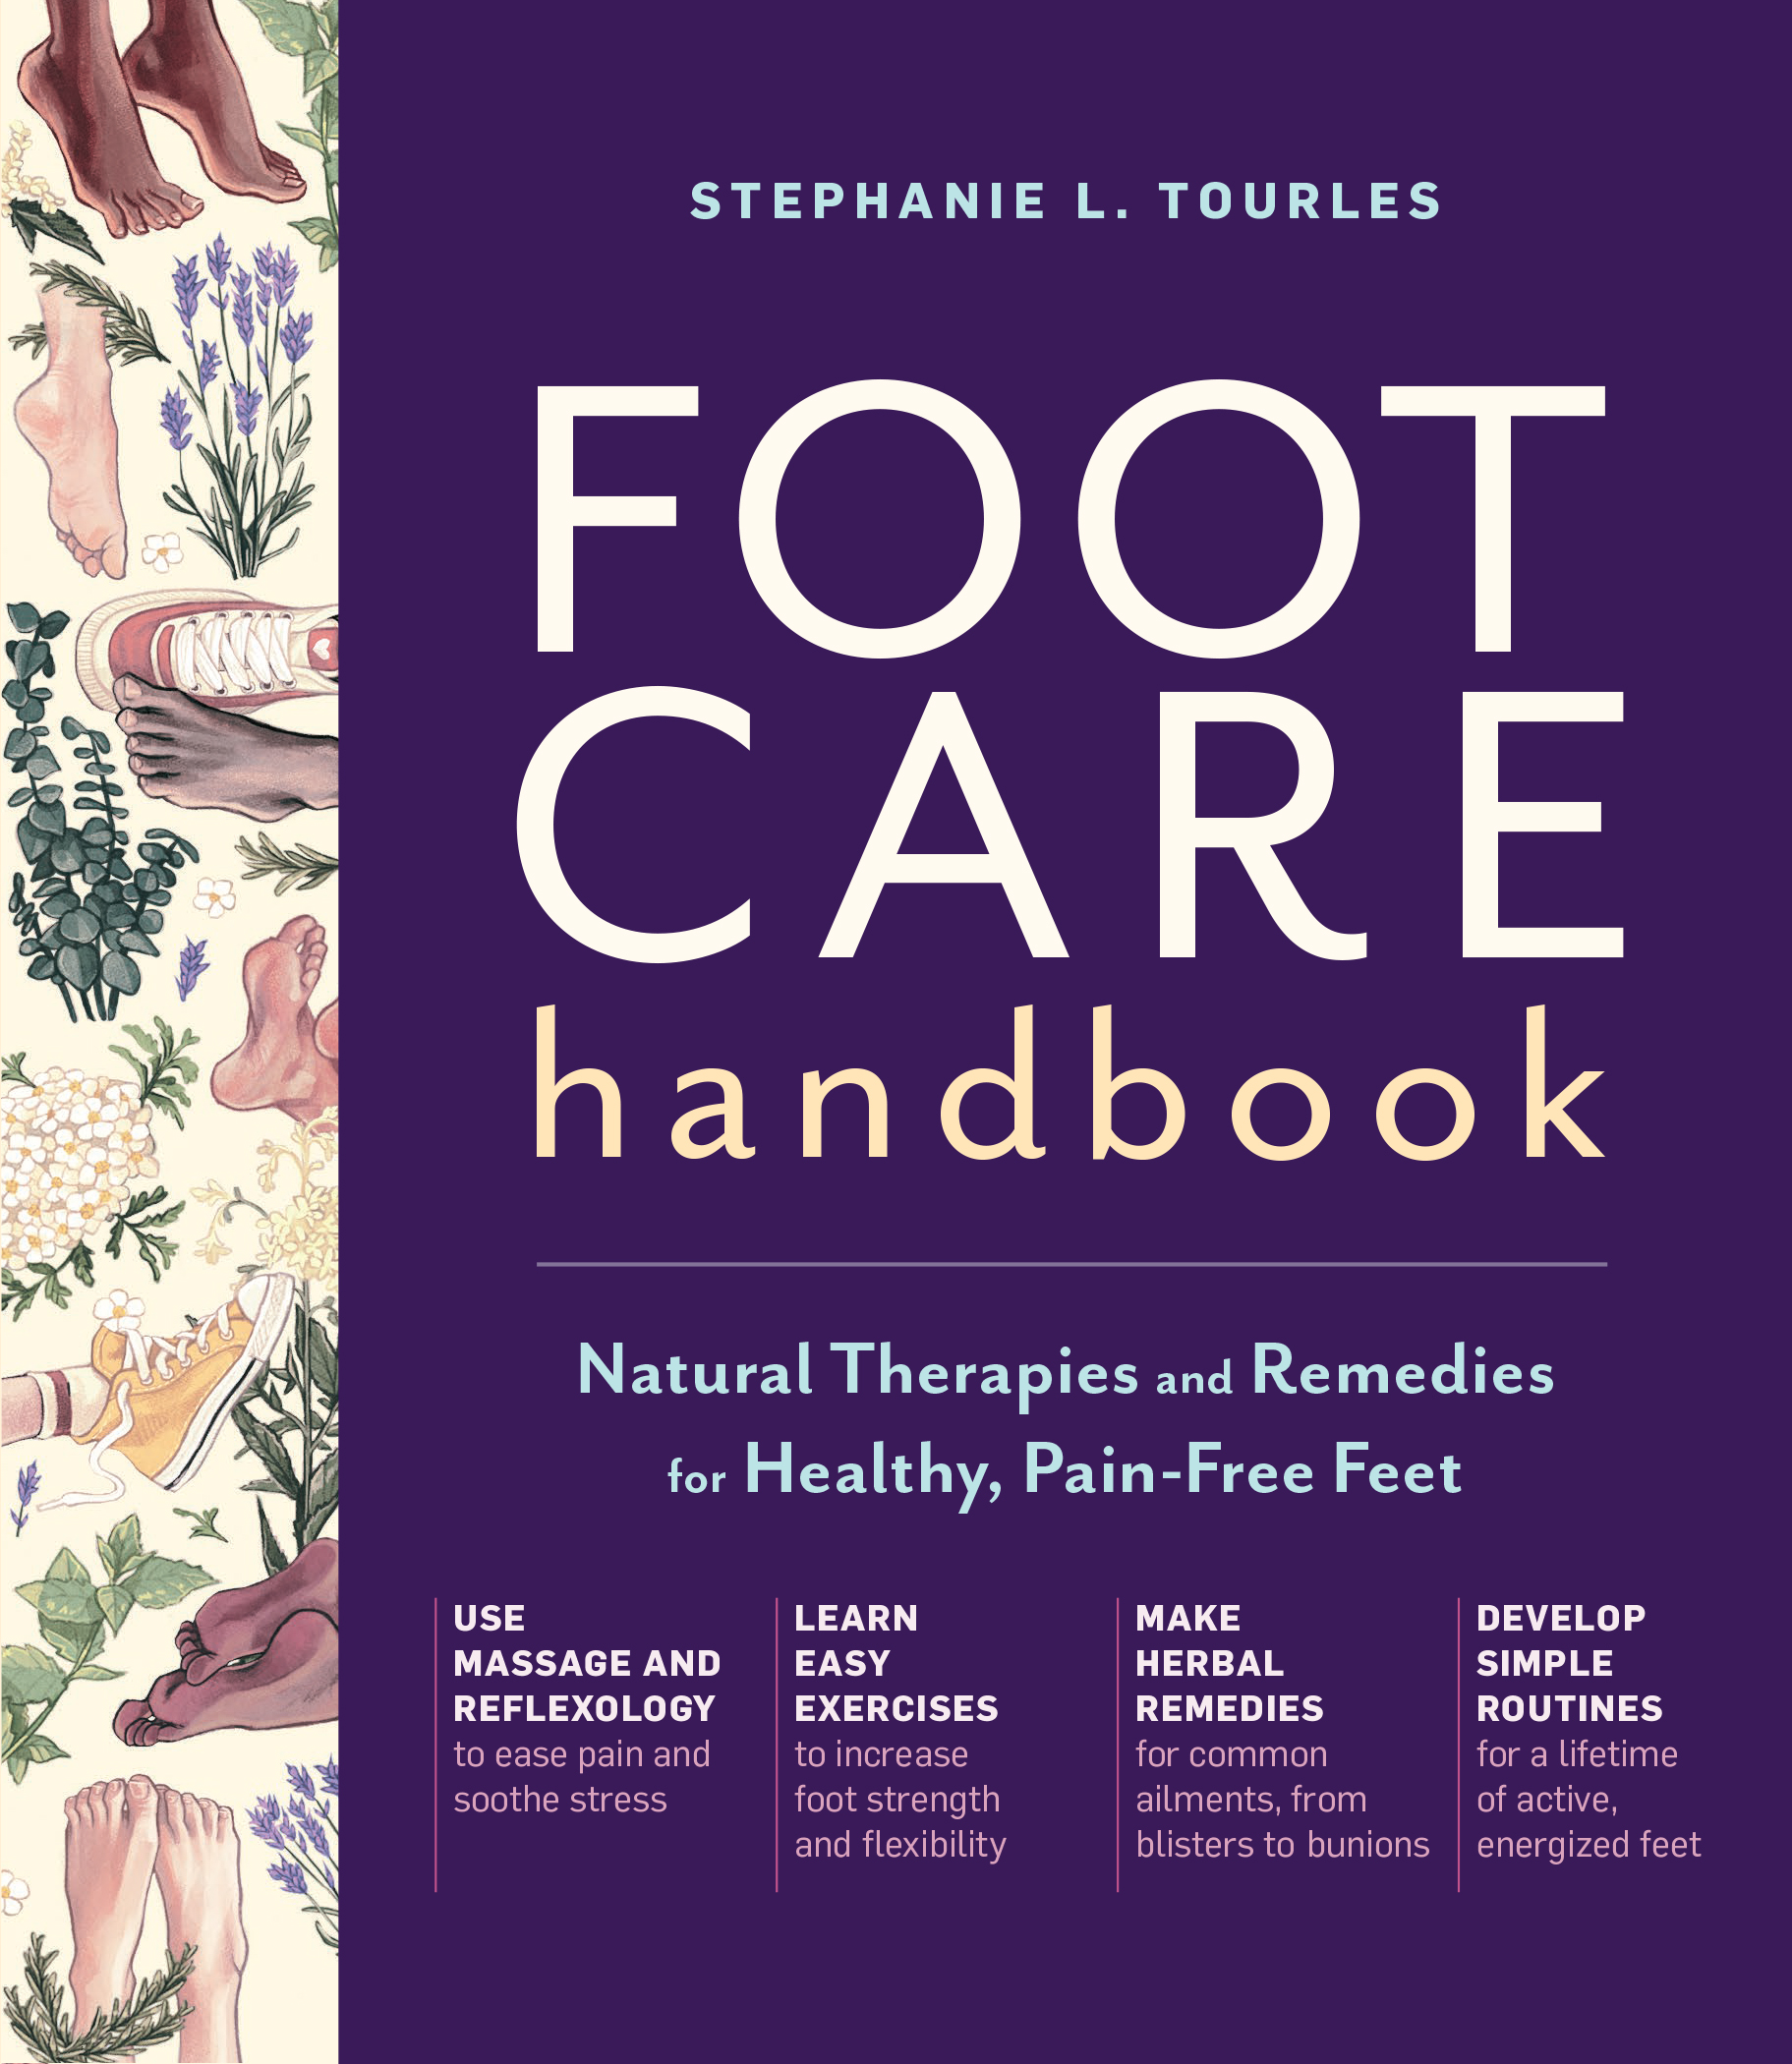 Foot Care Handbook Natural Therapies and Remedies for Healthy, Pain-Free Feet - Stephanie L. Tourles